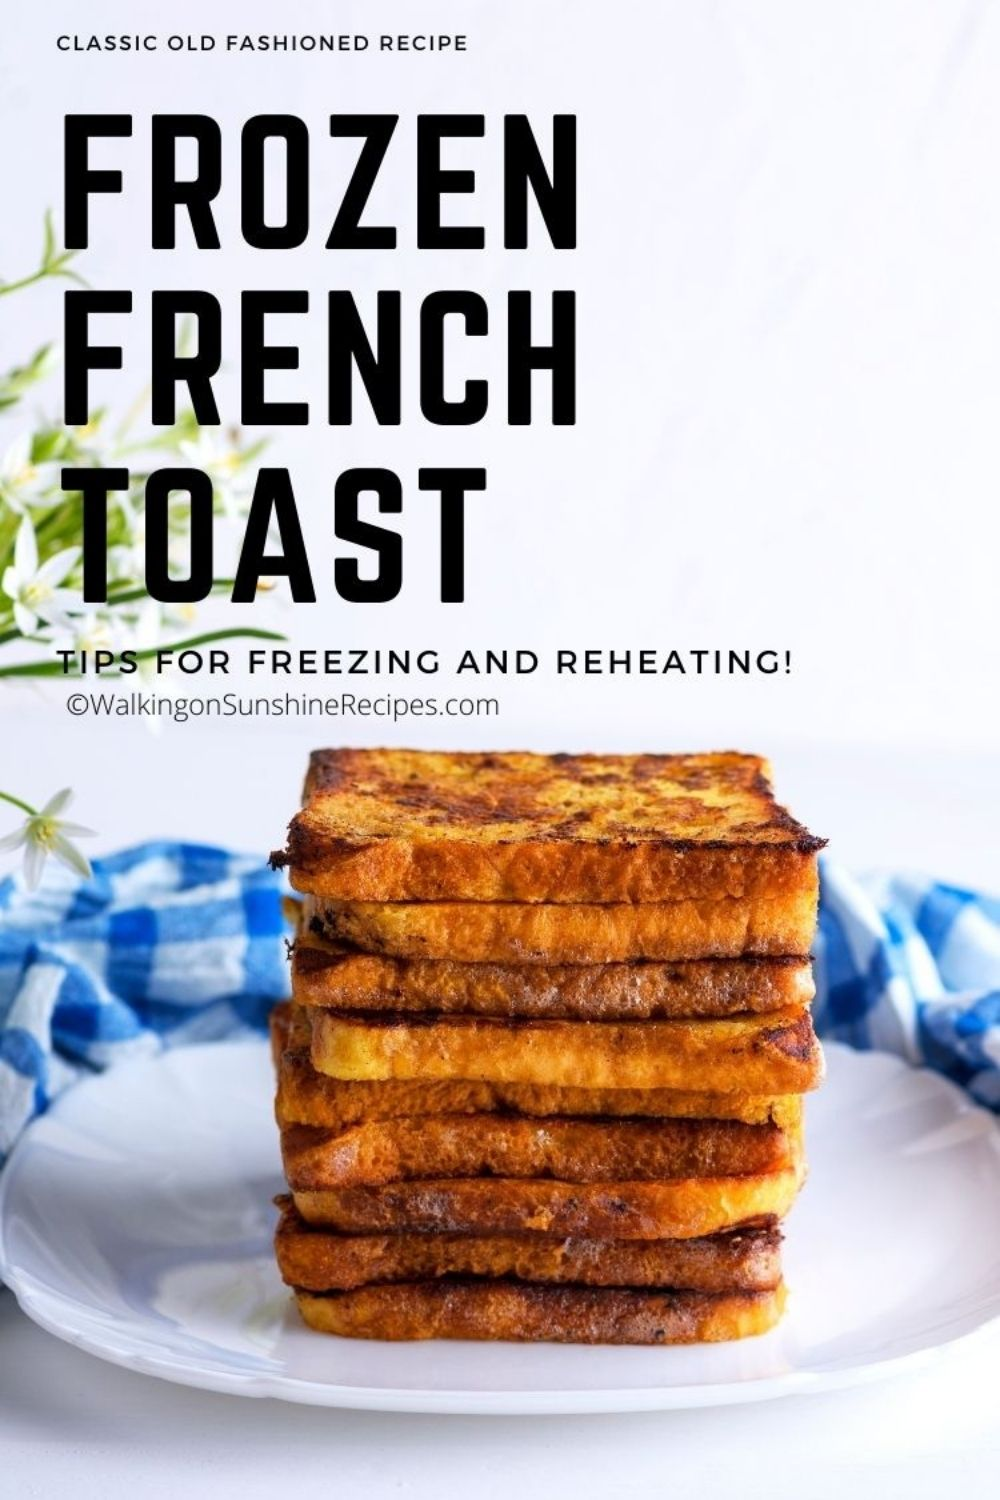 frozen french toast and tips for reheating.